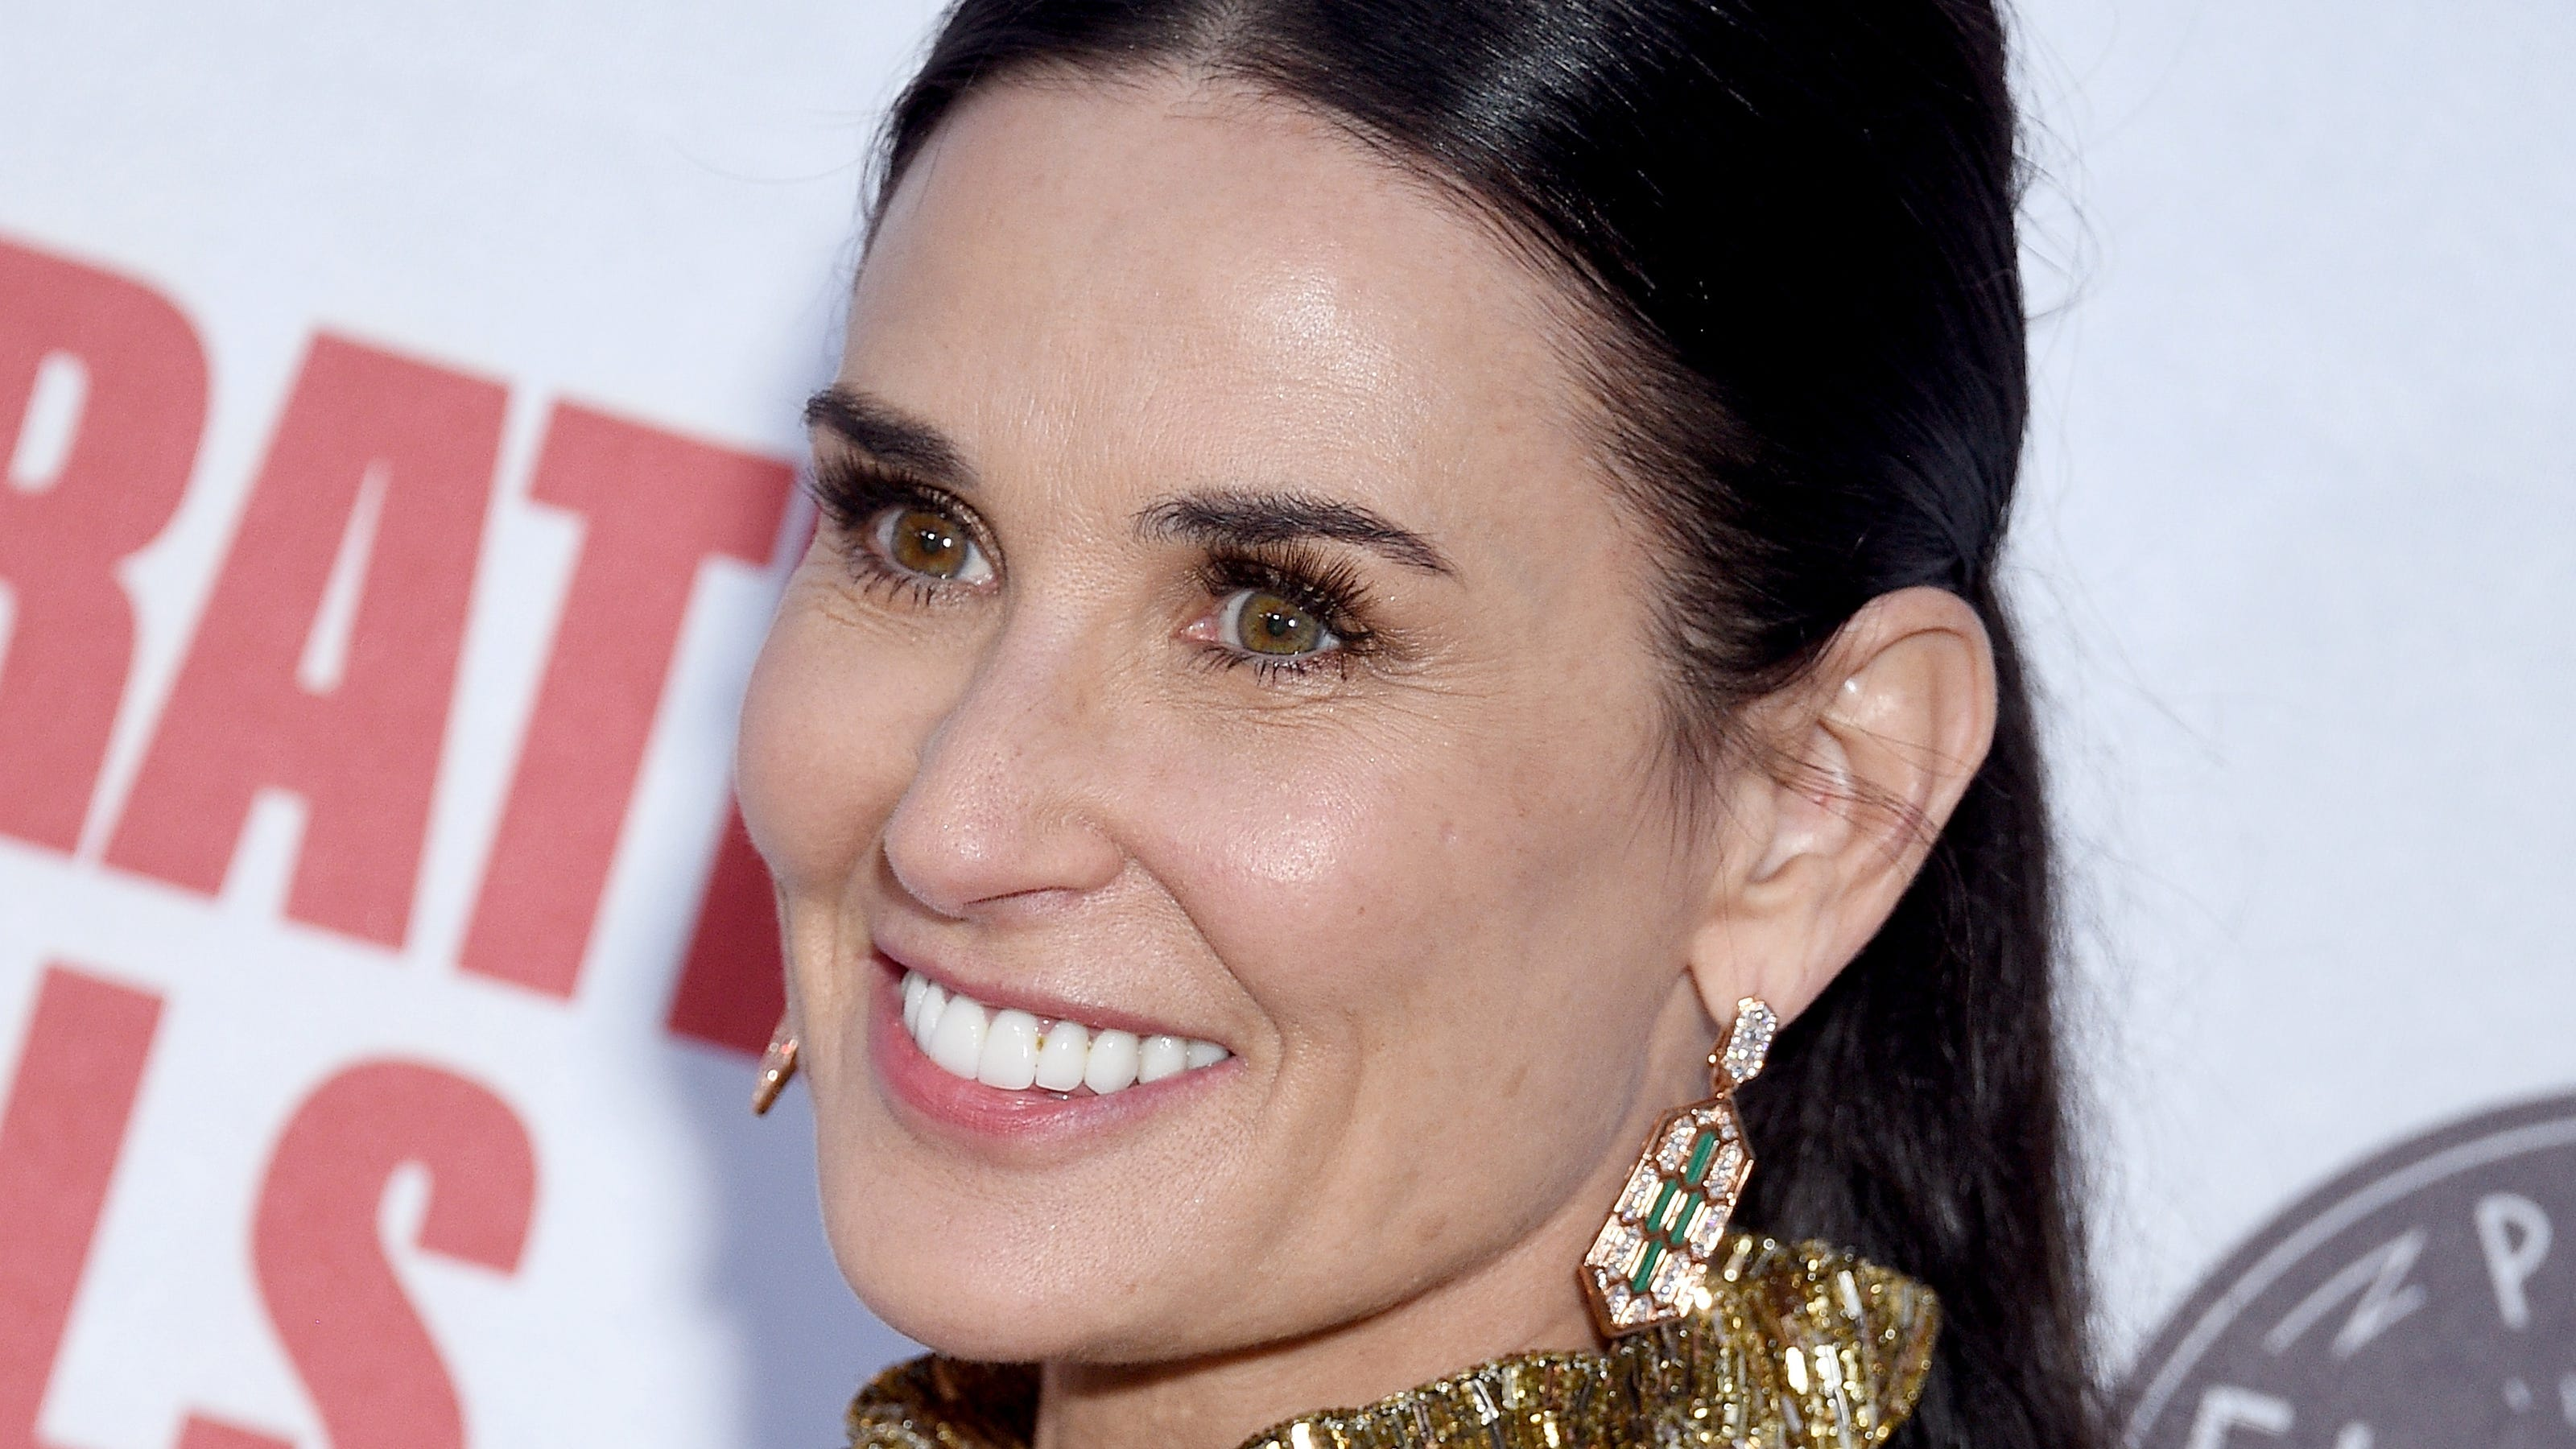 Demi Moore praises ex-husband Bruce Willis' wife Emma as 'absolutely inspiring' - USA TODAY